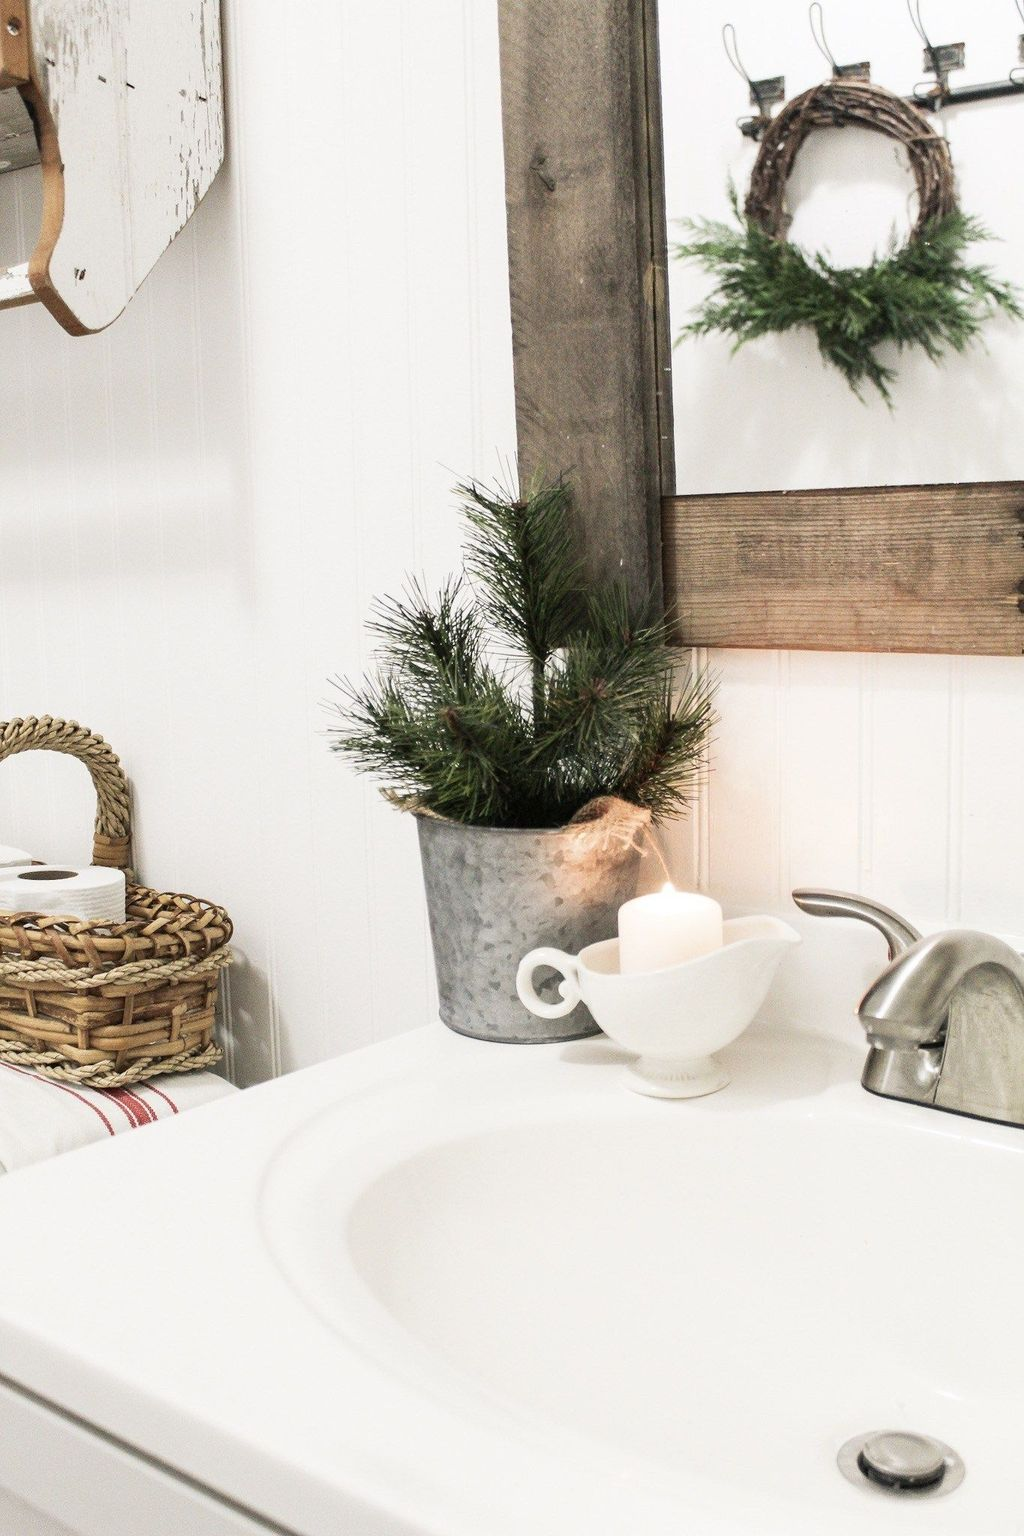 Fabulous Christmas Theme Bathroom Decor Ideas Trend 2019 12